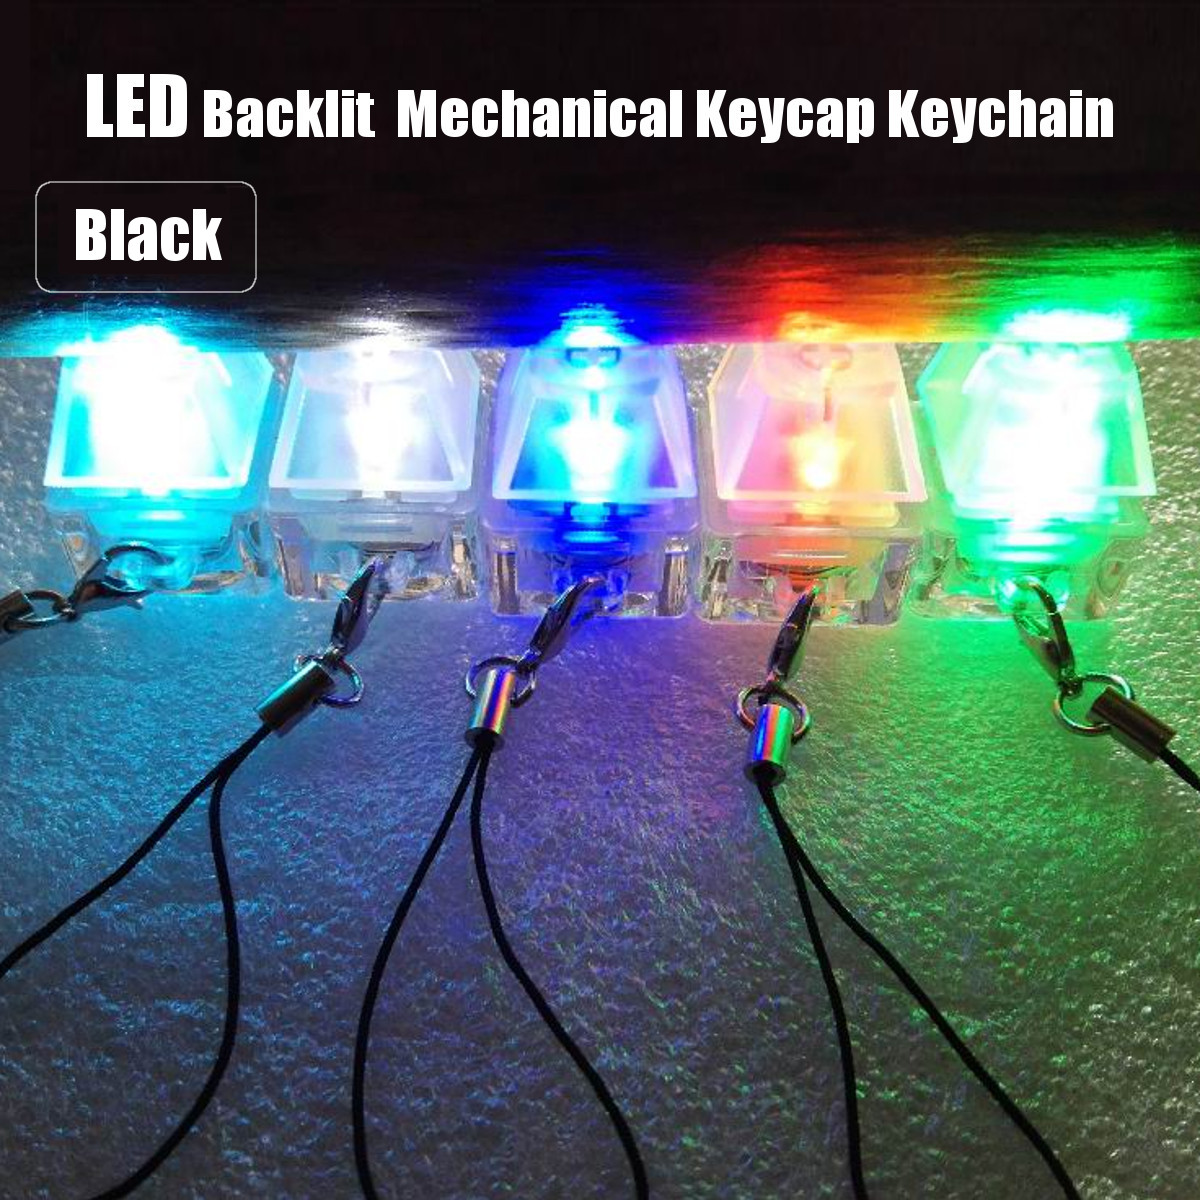 Mechanical Keyboard Black Switch Keycap Tester Keychain for Cherry MX Switch with LED Backlit